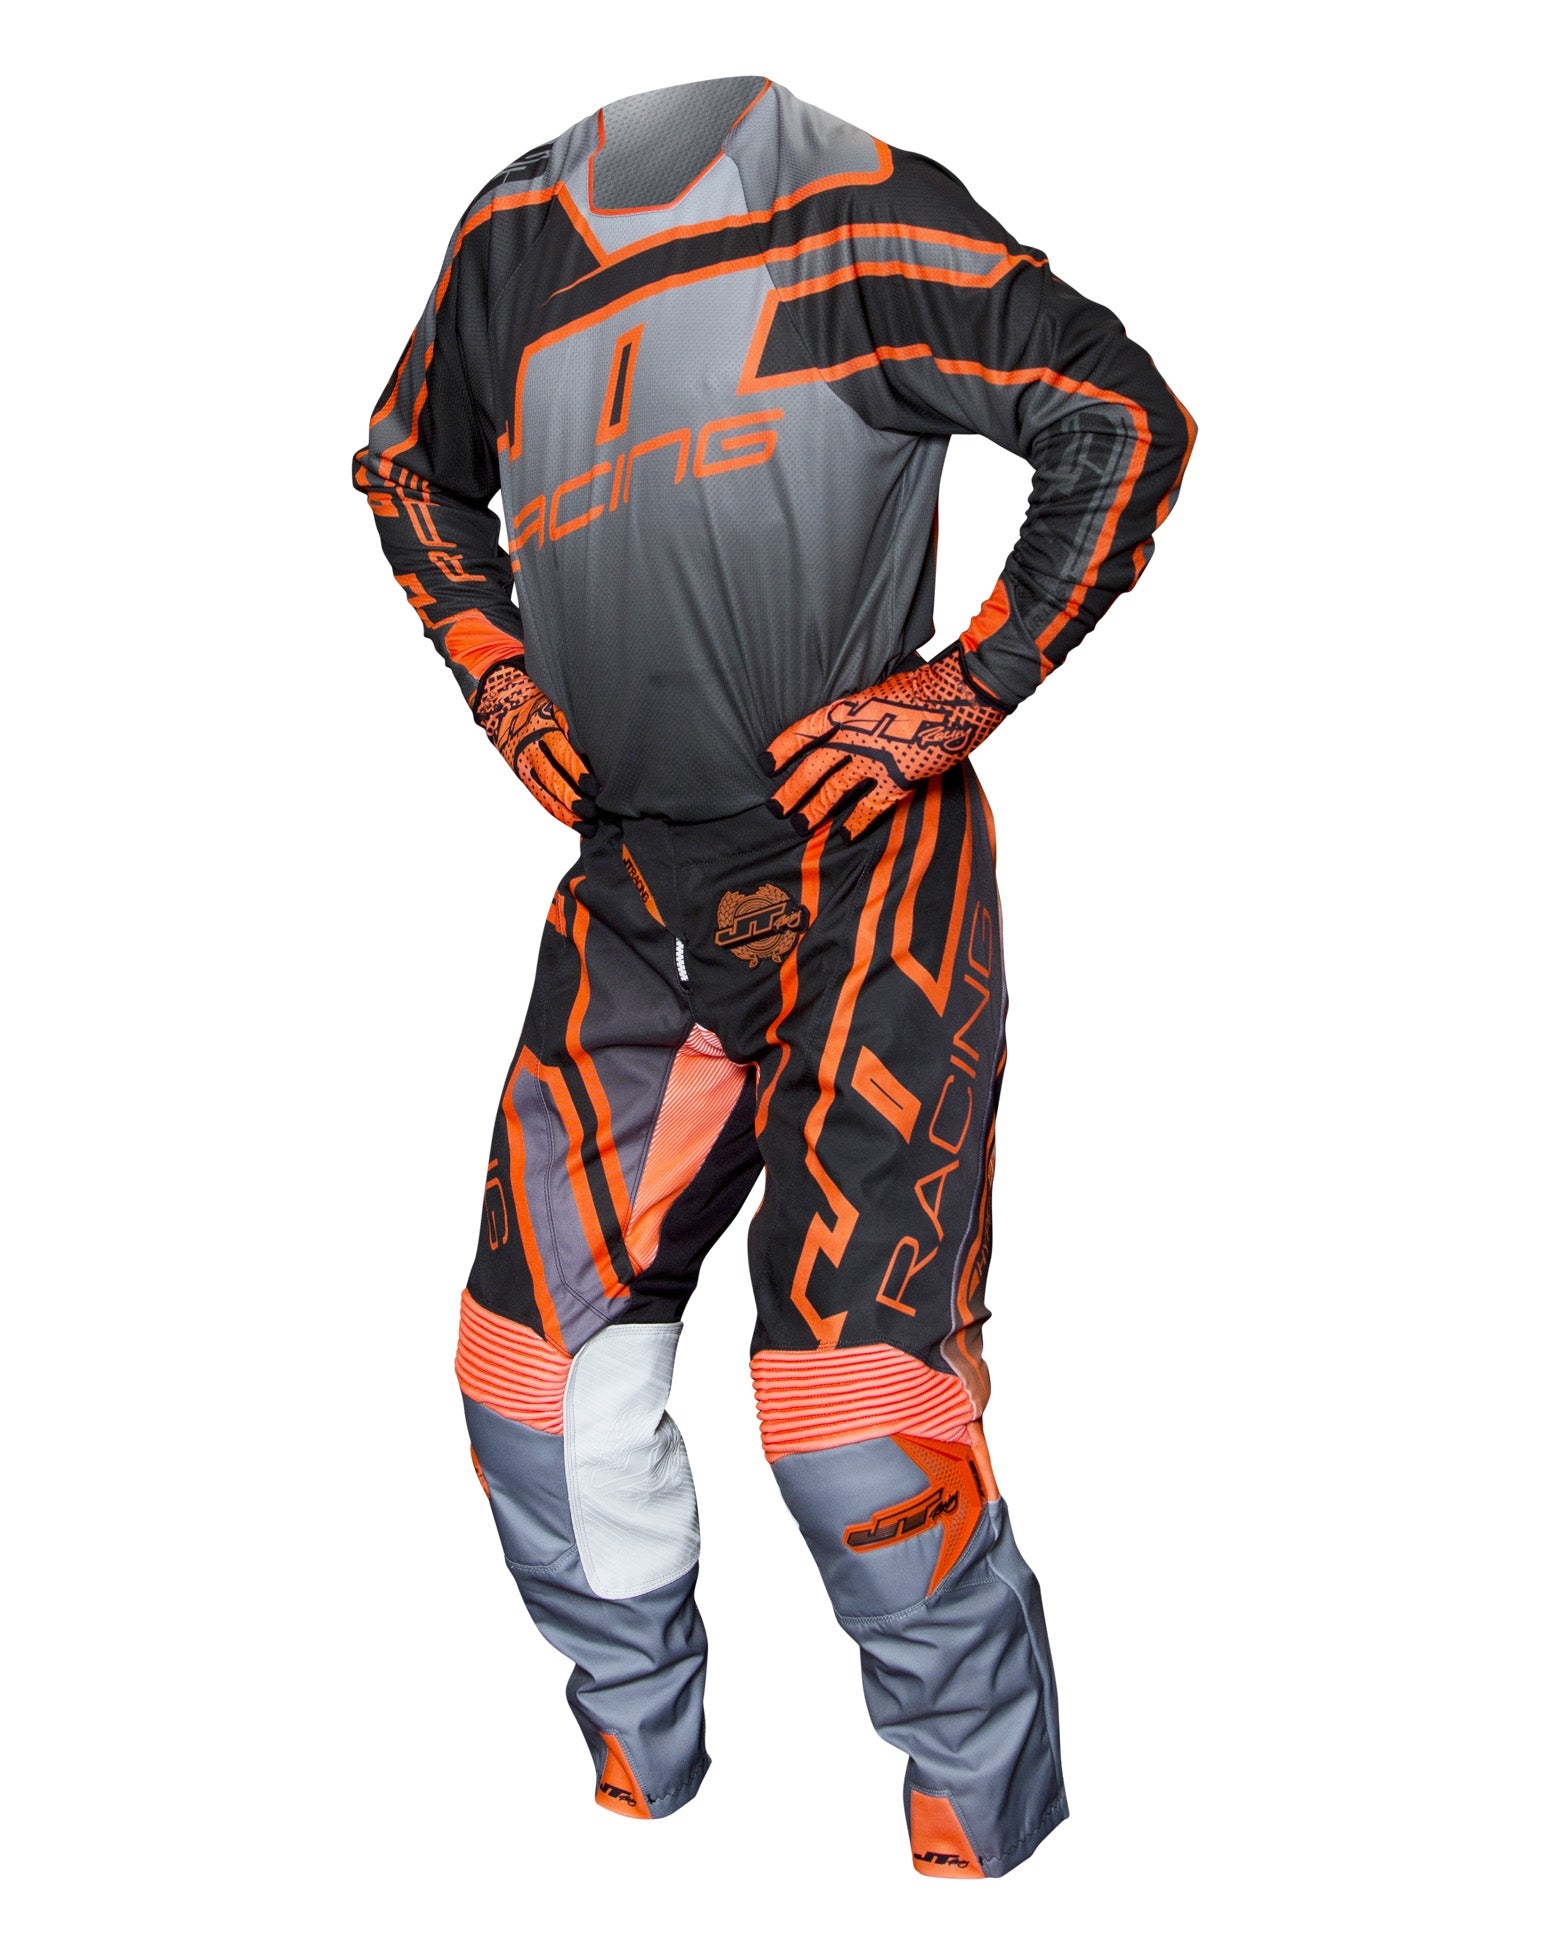 JT RACING USA Hyperlite Revert Pants, Grey/Black/Orange